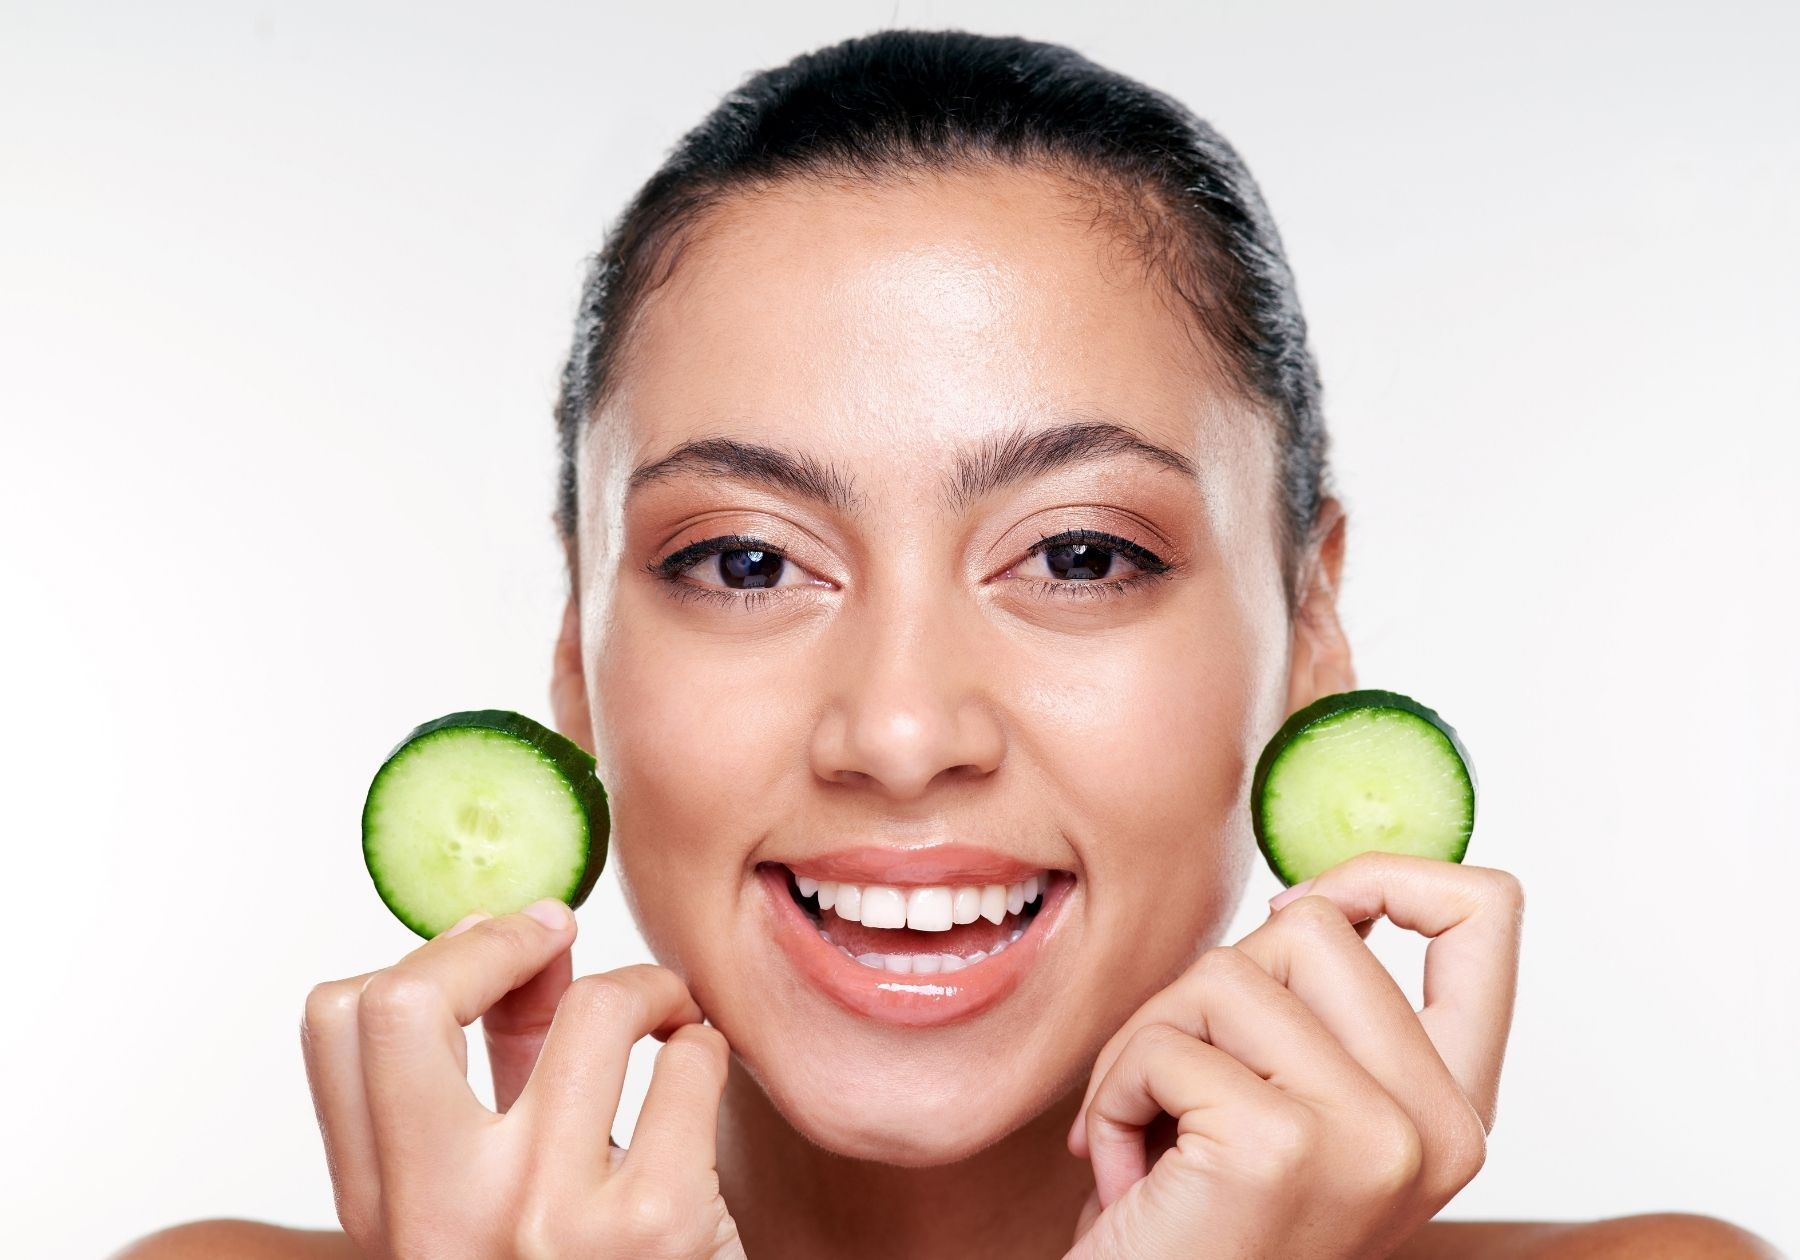 Food that makes your skin glow